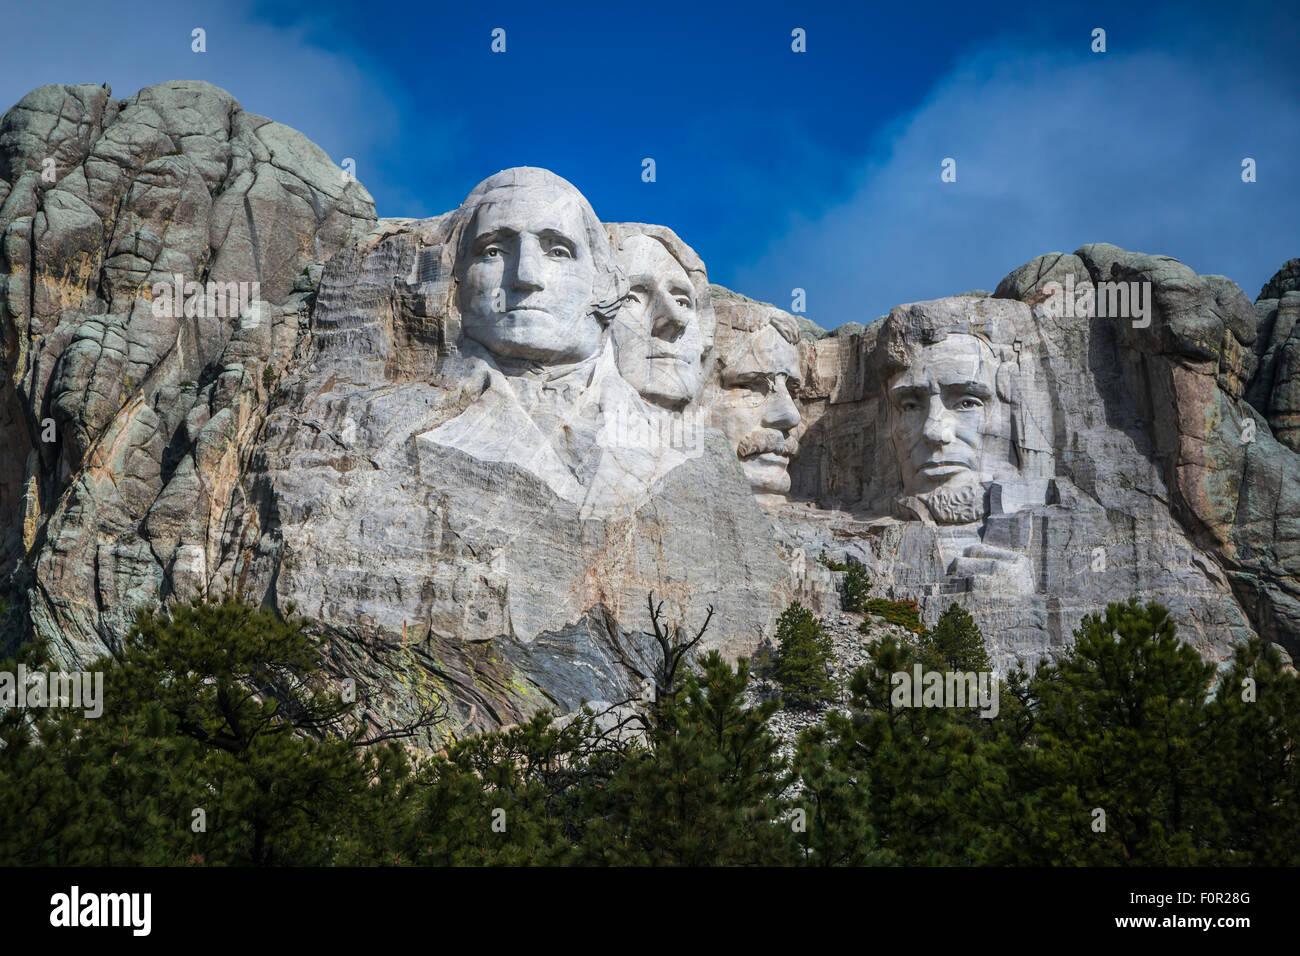 Mount Rushmore National Memorial is a sculpture carved into the granite face of Mount Rushmore near Keystone, South Stock Photo